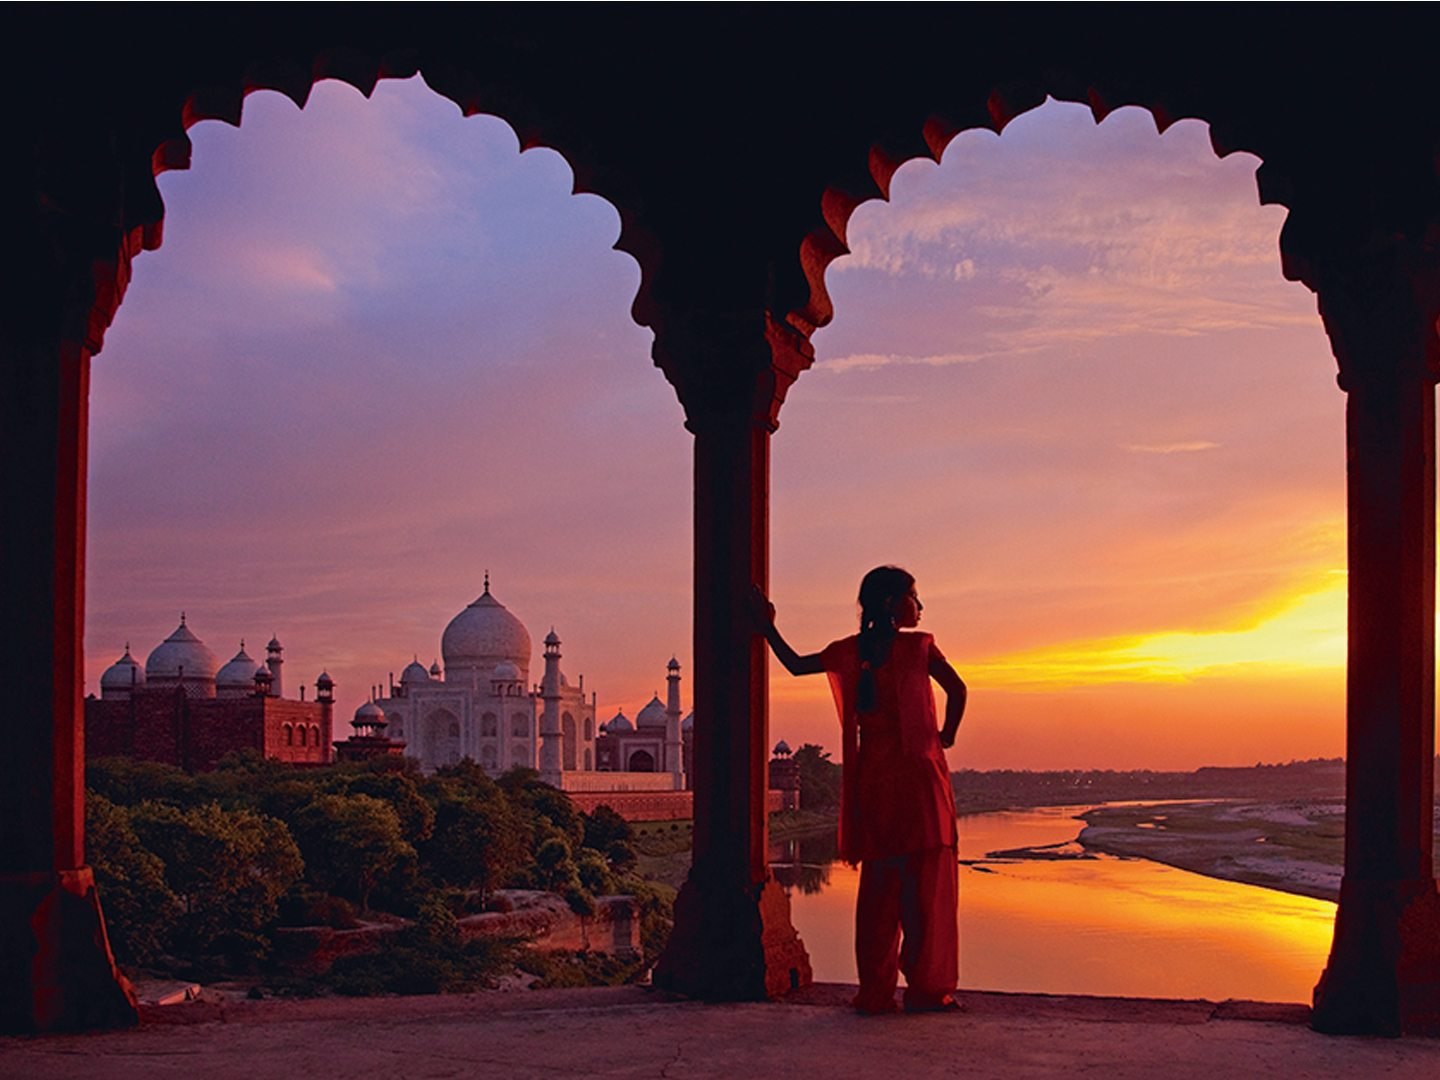 The sight of the sun setting over the Yamuna behind the Taj Mahal has mesmerised visitors to Agra for centuries. Photo: Adrian Pope/Photographer's Choice/Getty Images